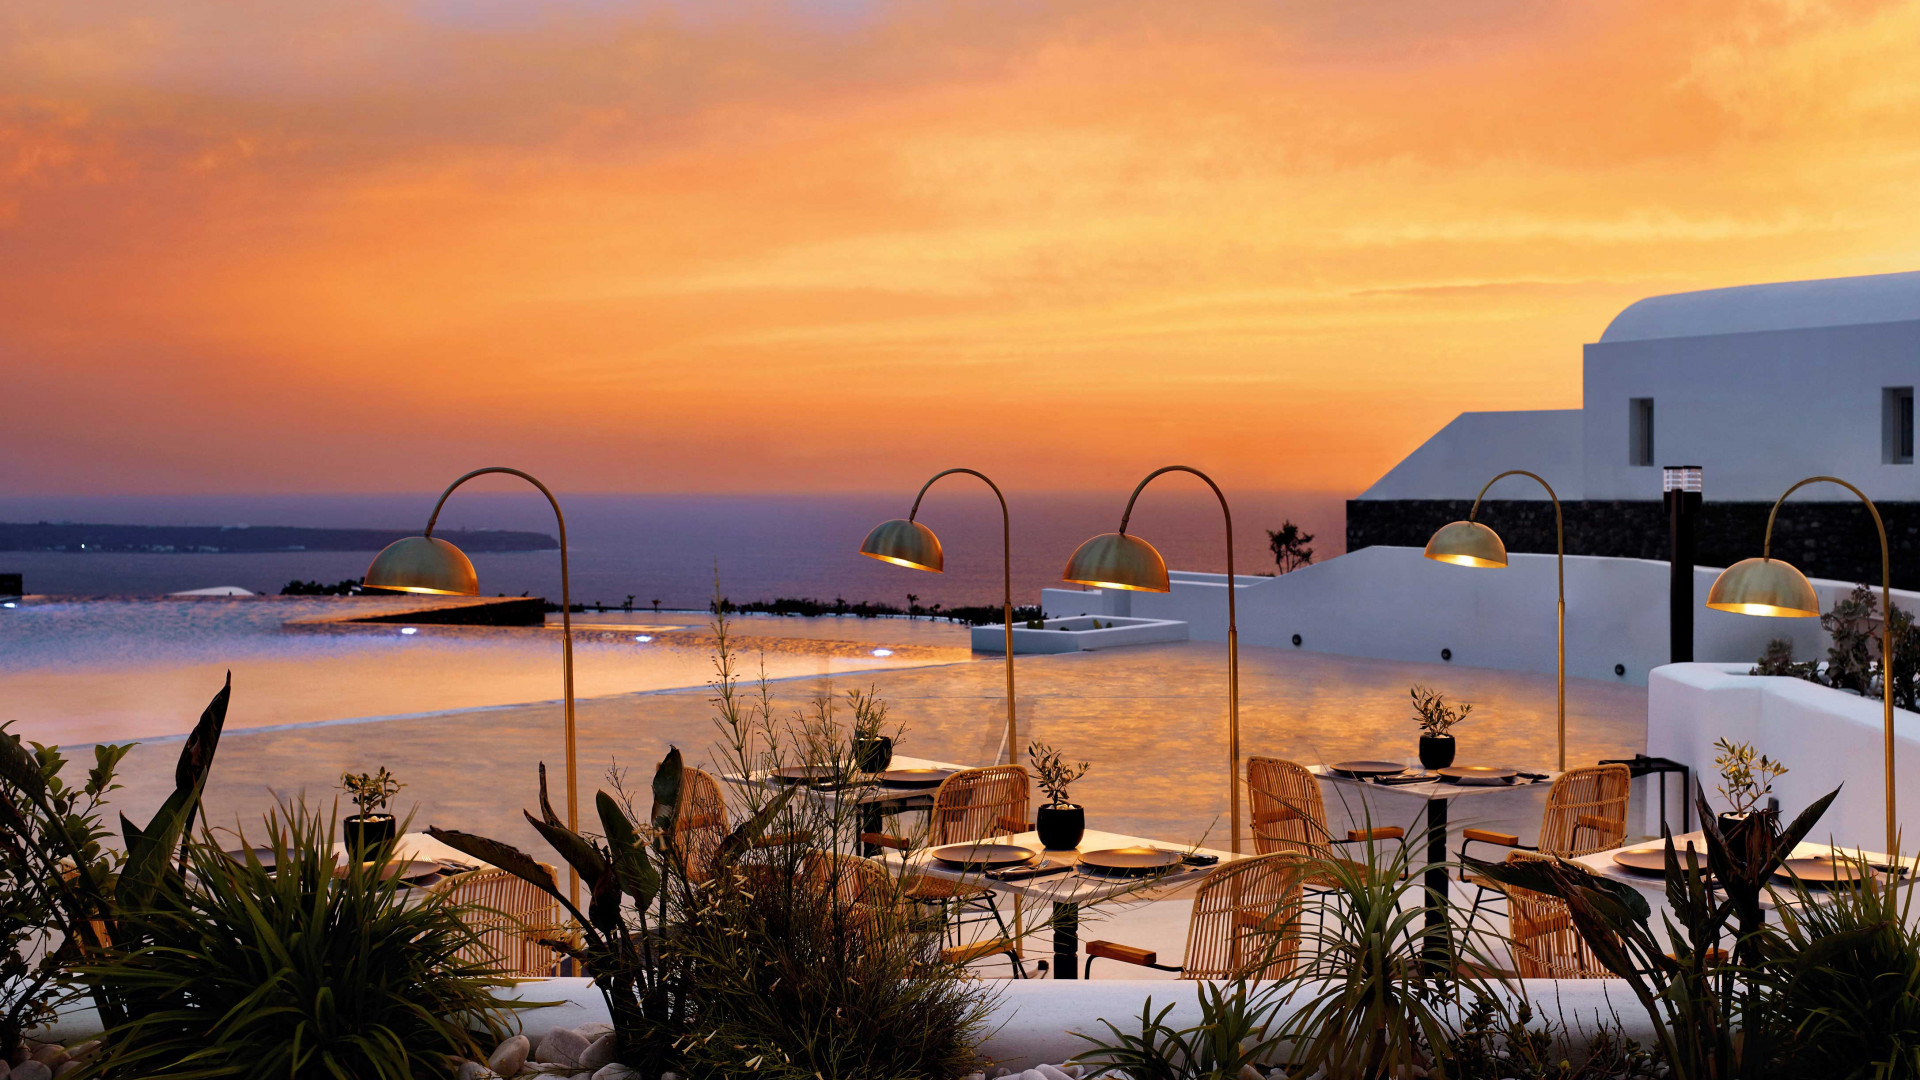 A sunset over the pool at Santo Maris Oia